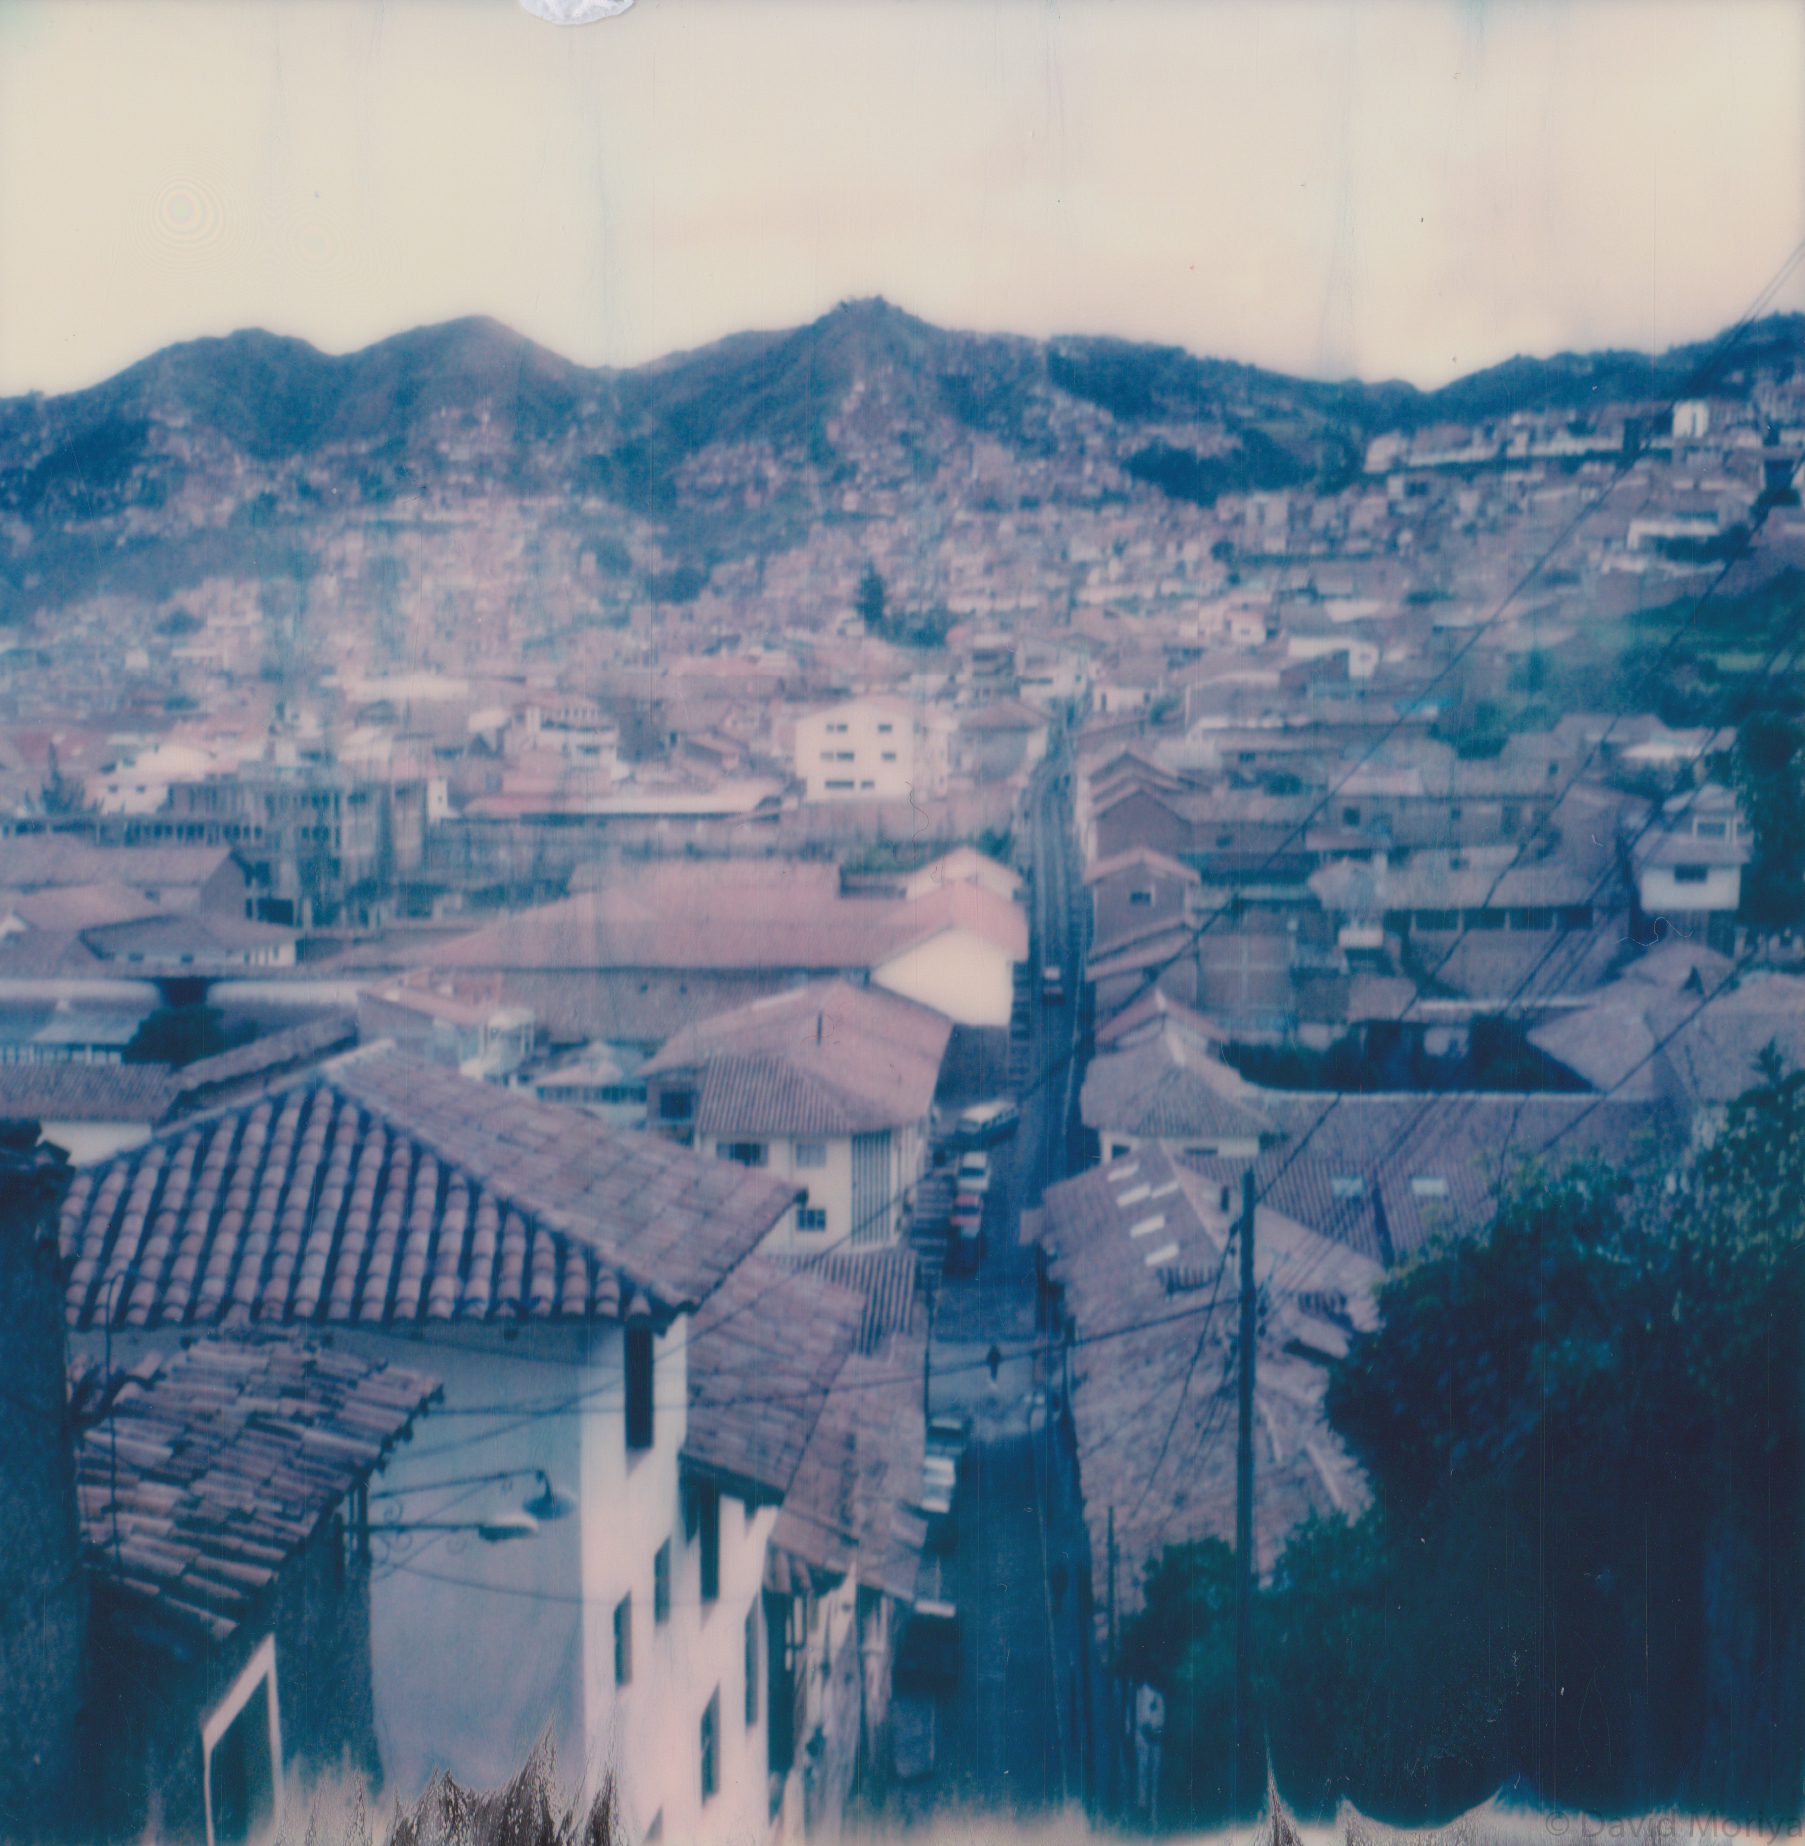 Polaroids, 110 Film, Disposables, and Digitals, David Moriya sets out on a 2 week adventure through peru. Experiencing new foods, new friendships, and full of colors.